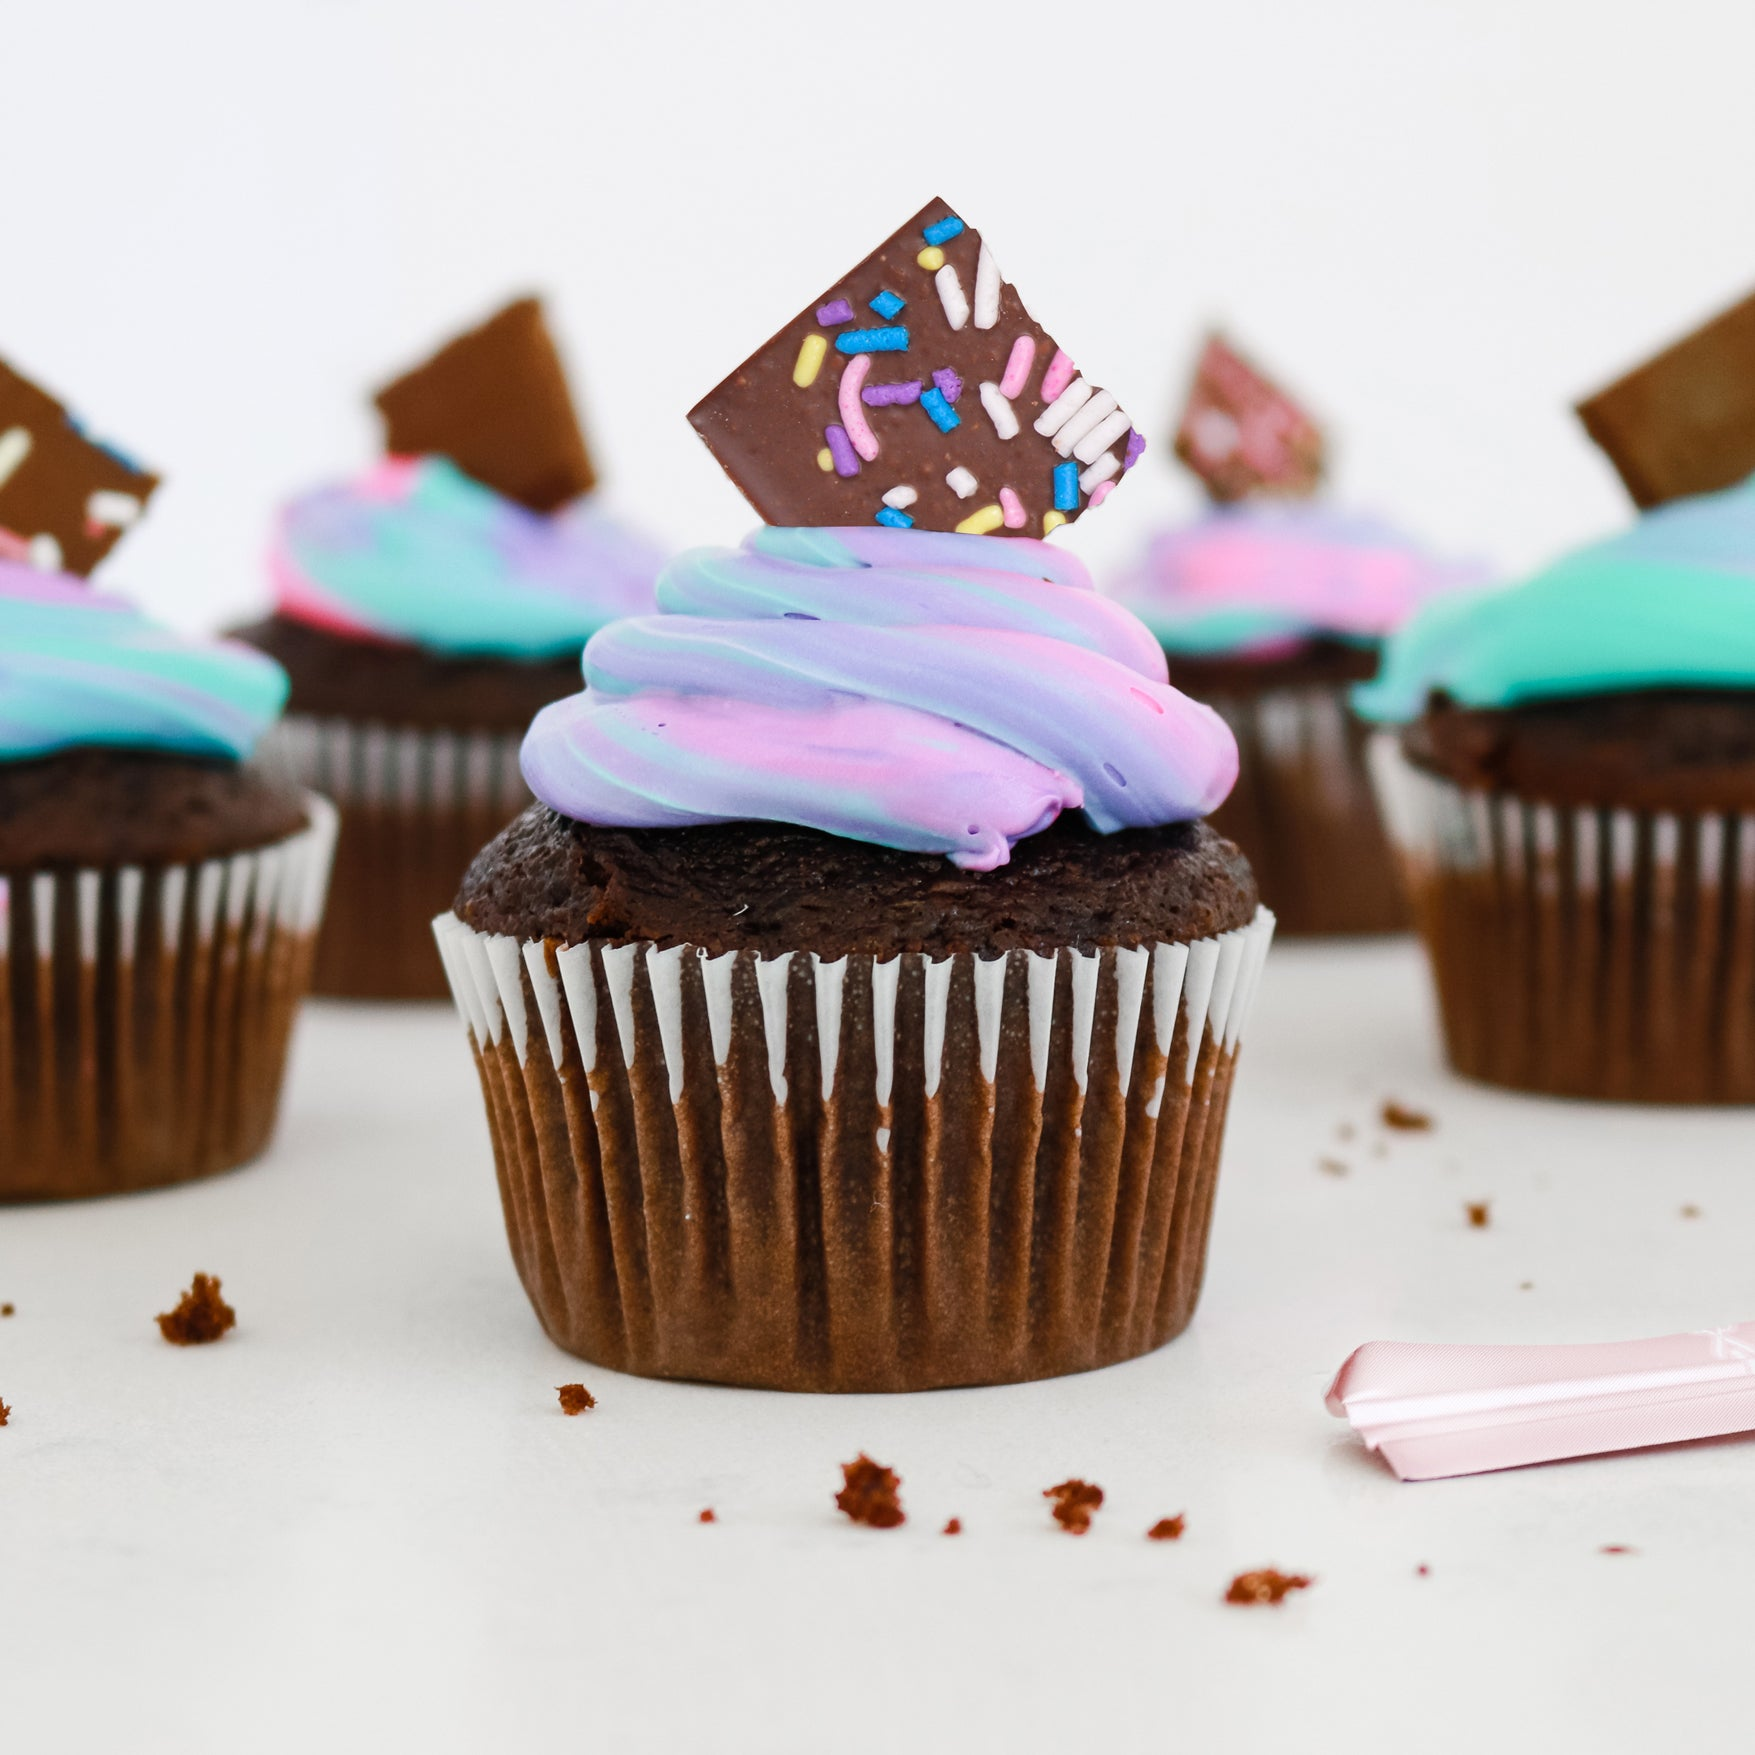 Chocolate Unicorn Cupcakes